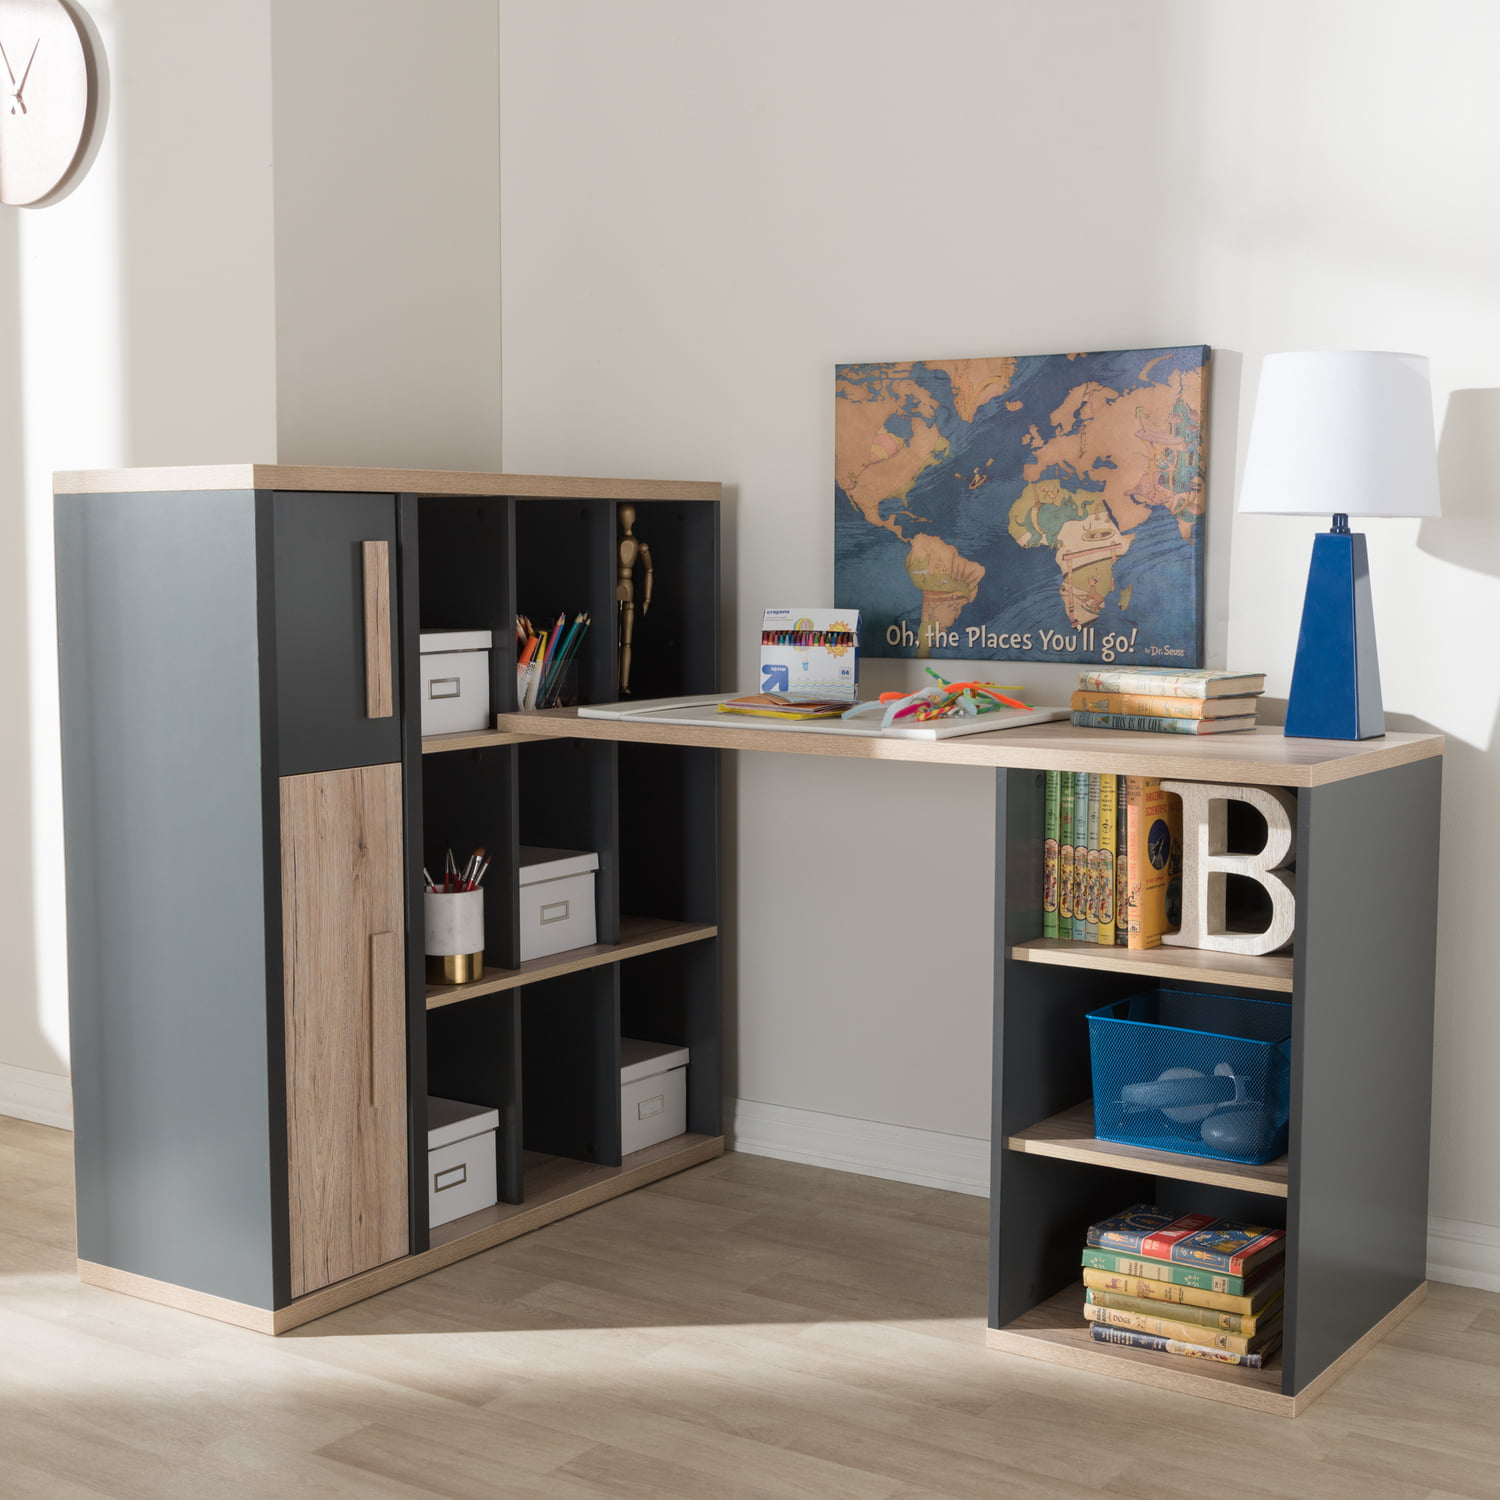 Baxton Studio Pandora Modern and Contemporary Dark Grey and Light Brown  Two Tone Study Desk with Built in Shelving Unit ColorGrey,FinishMedium ...